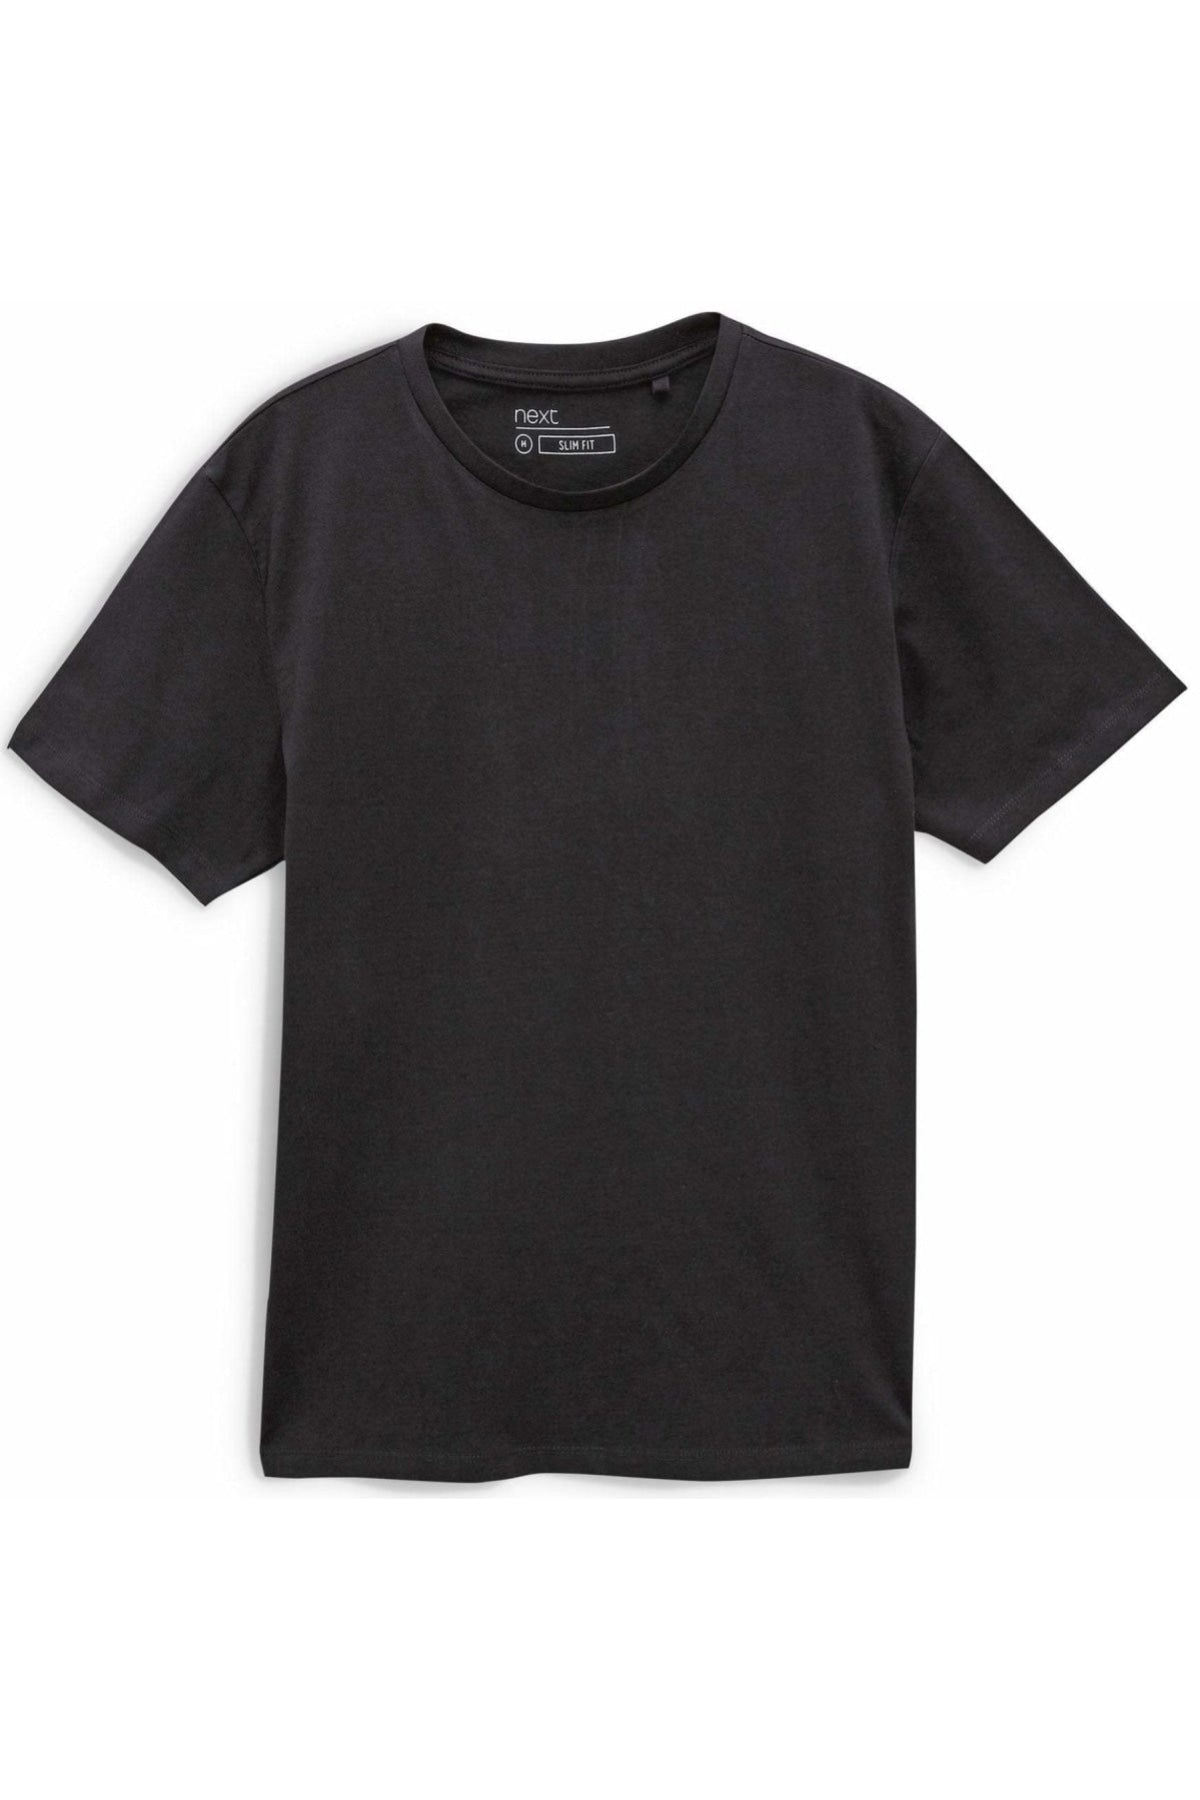 Next Ex Next Crew Neck Slim Fit T-Shirt | XS / Black Secret Label